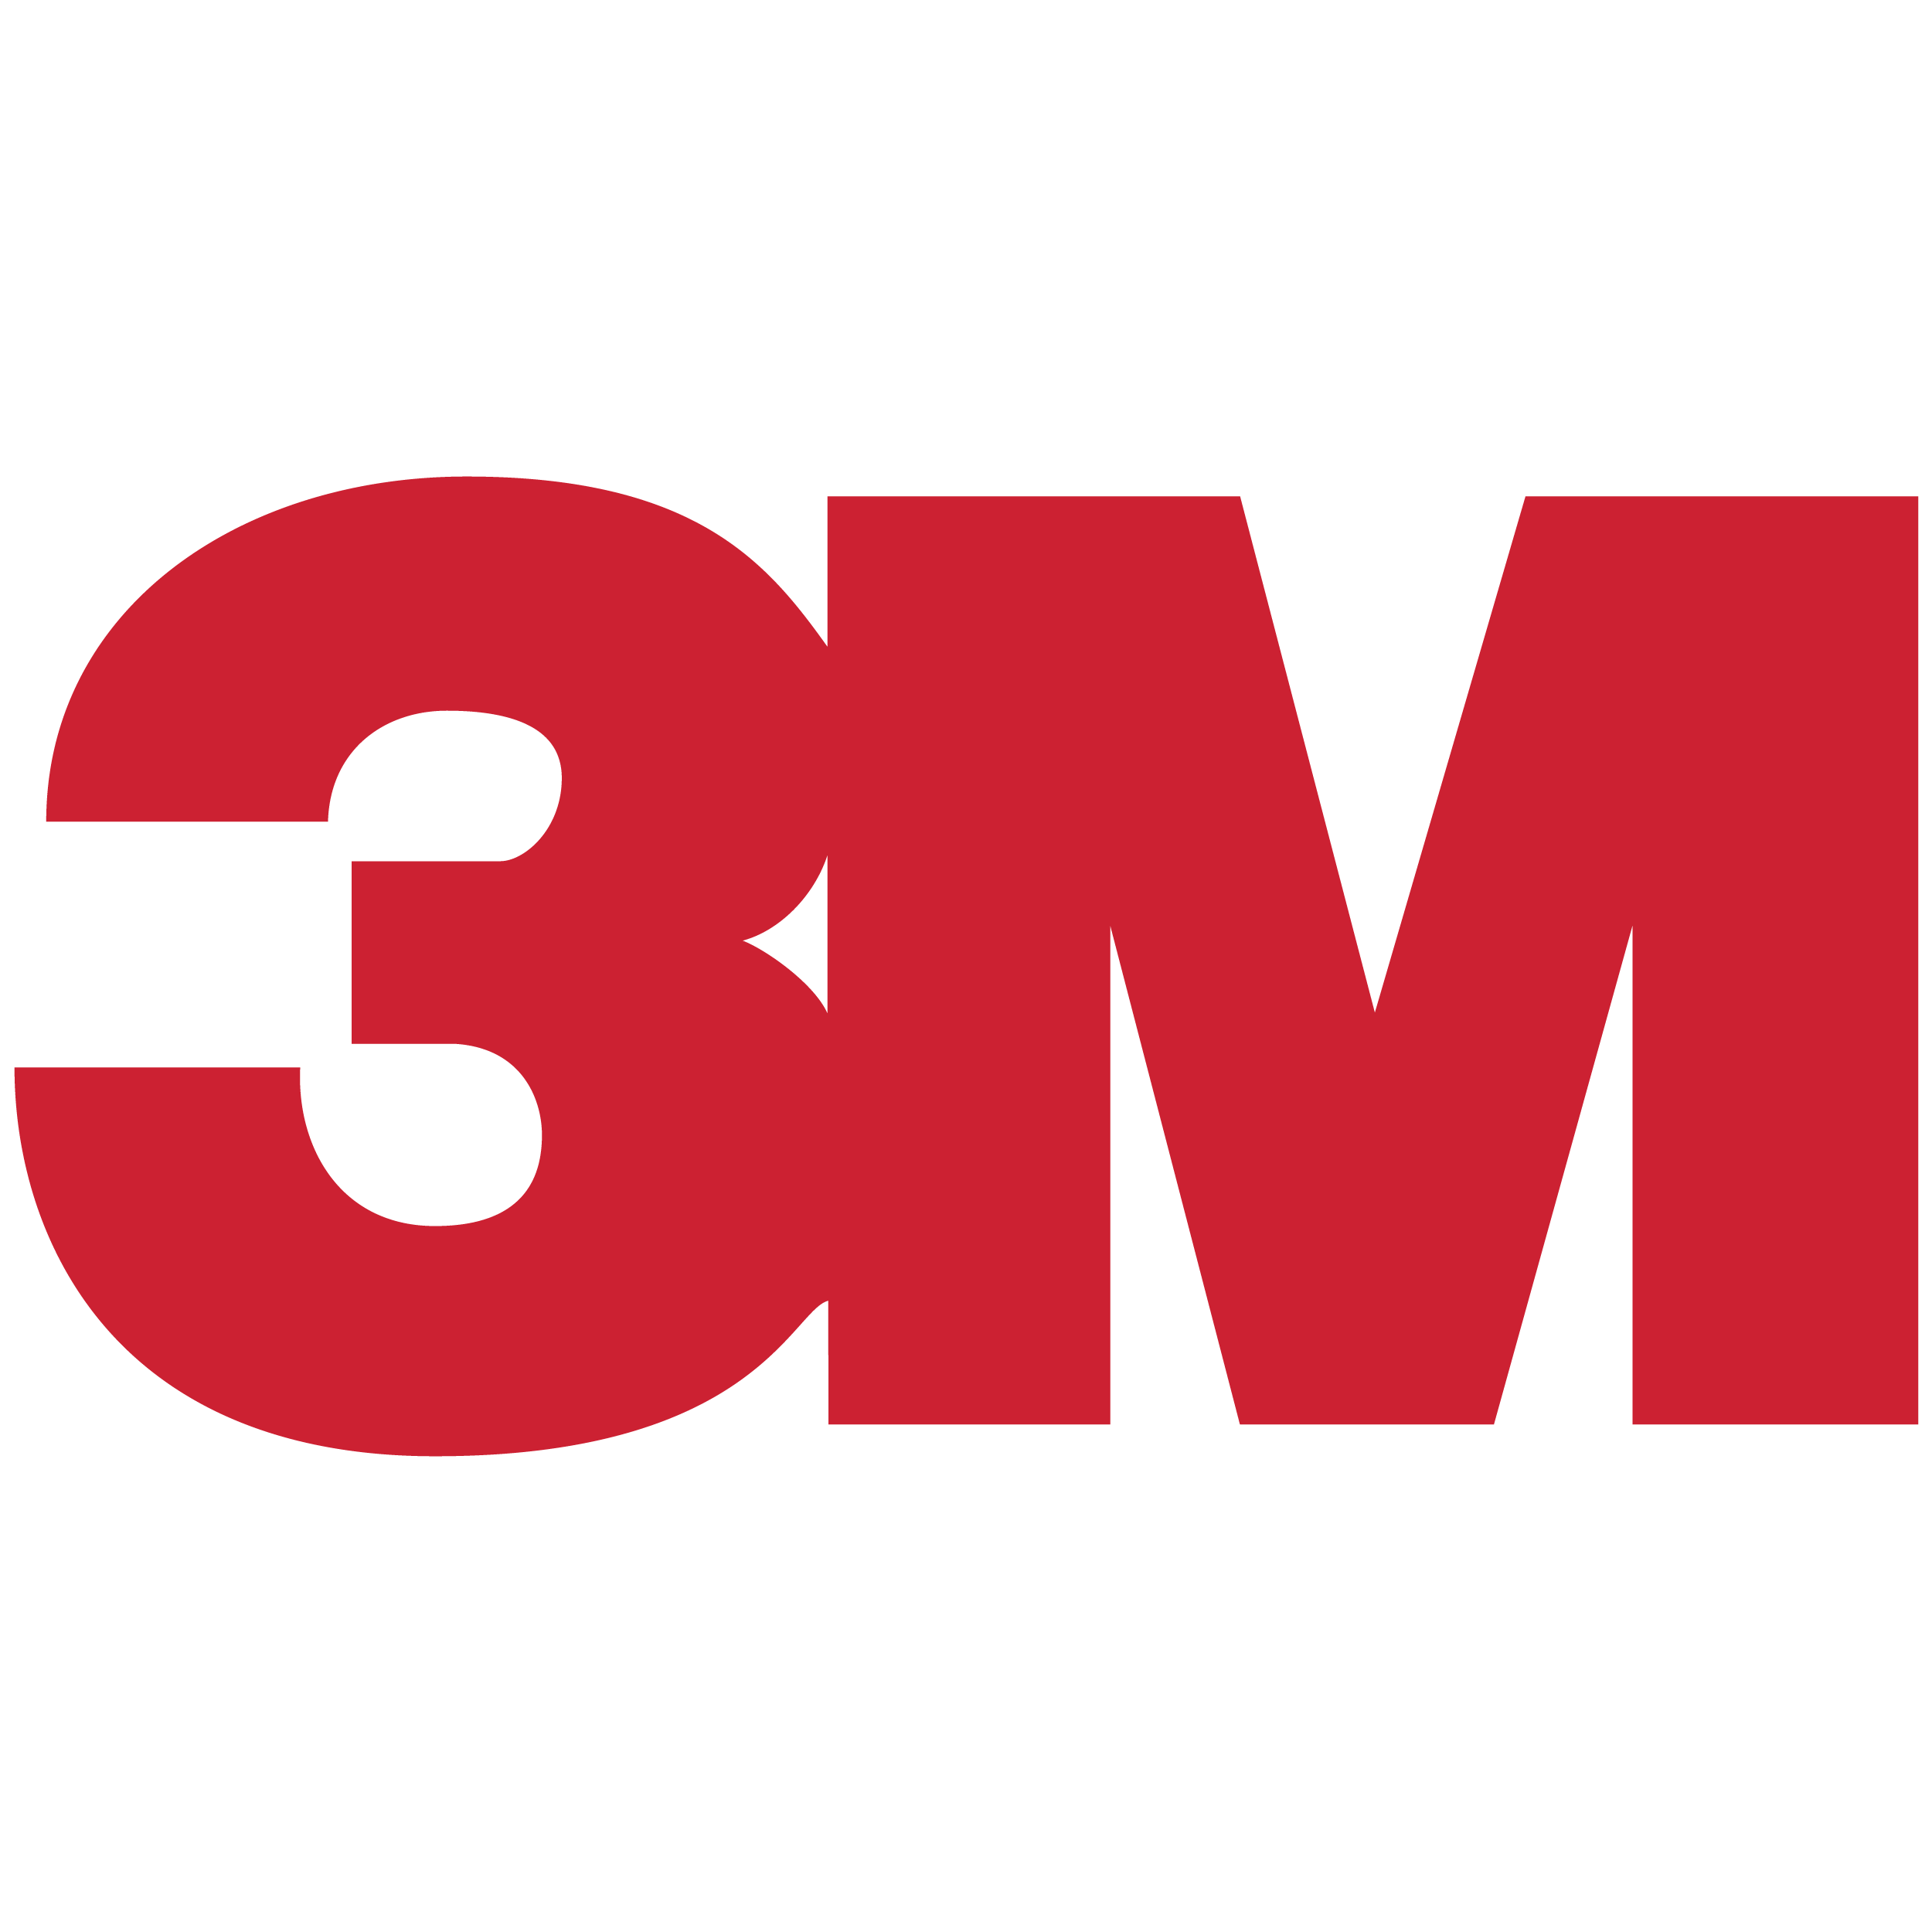 Class C Components Industrial Distributor of 3M Products Near You